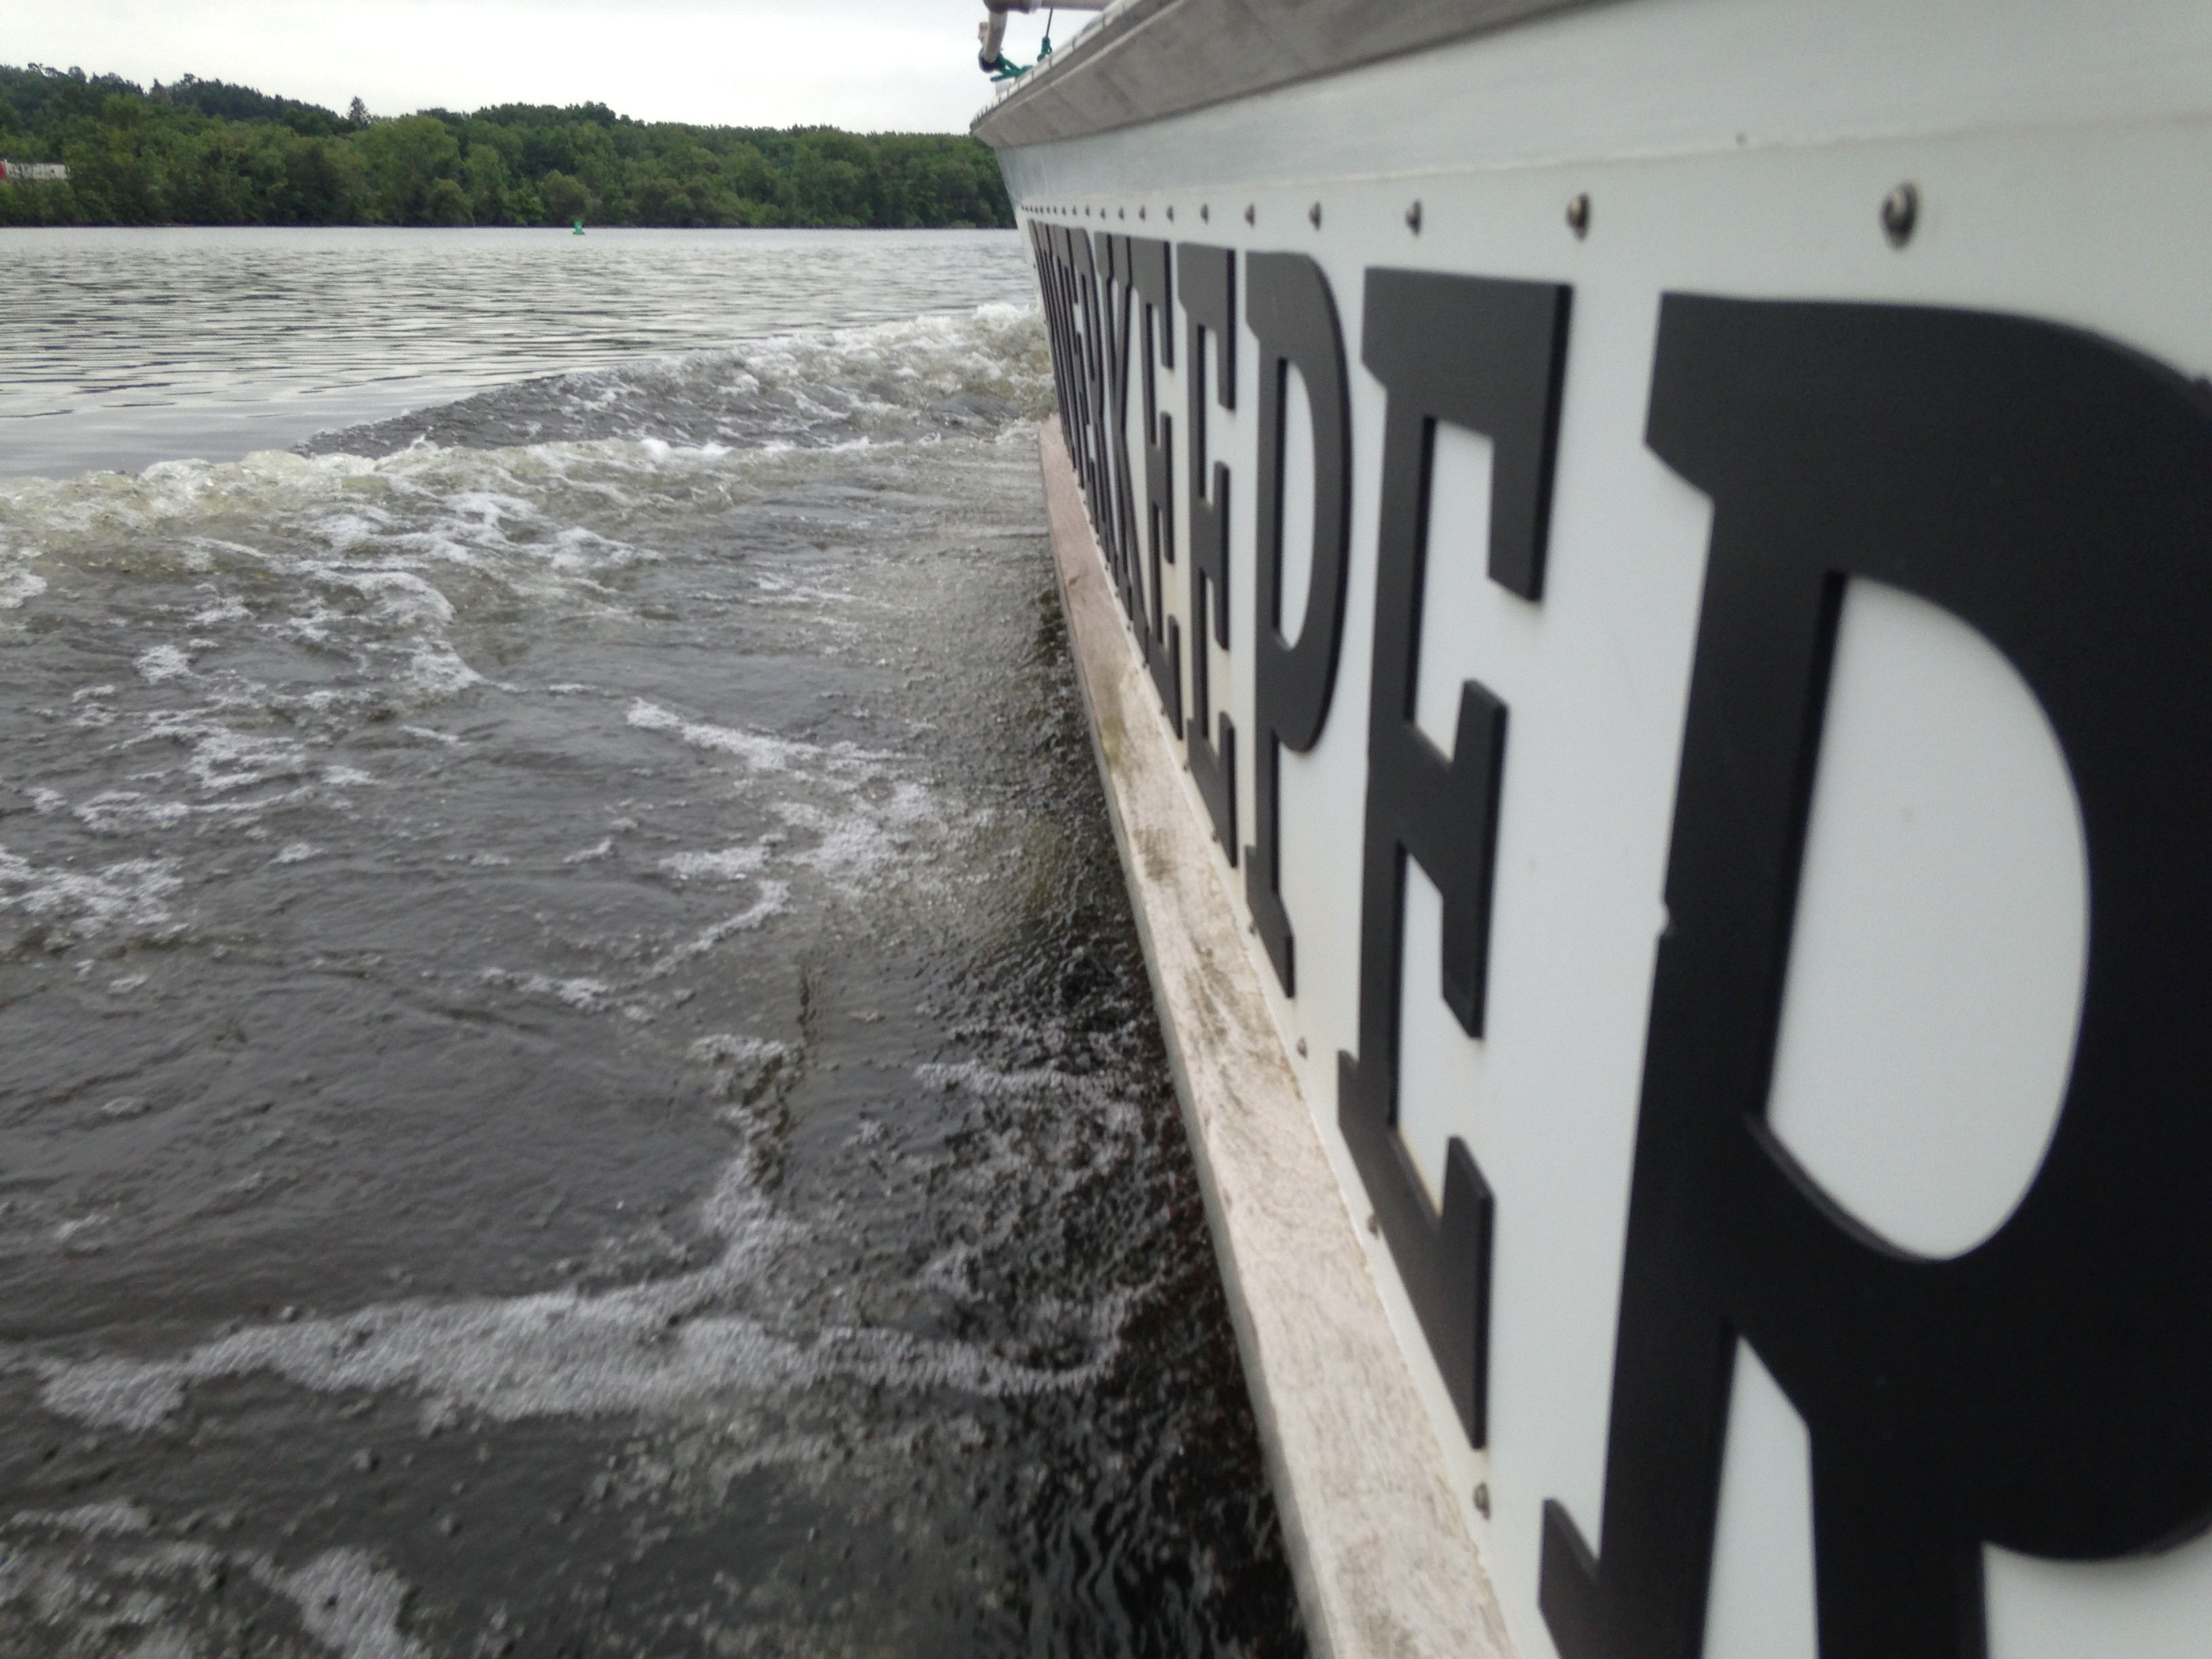 Riverkeeper on patrol in the Mohawk River in July 2015.